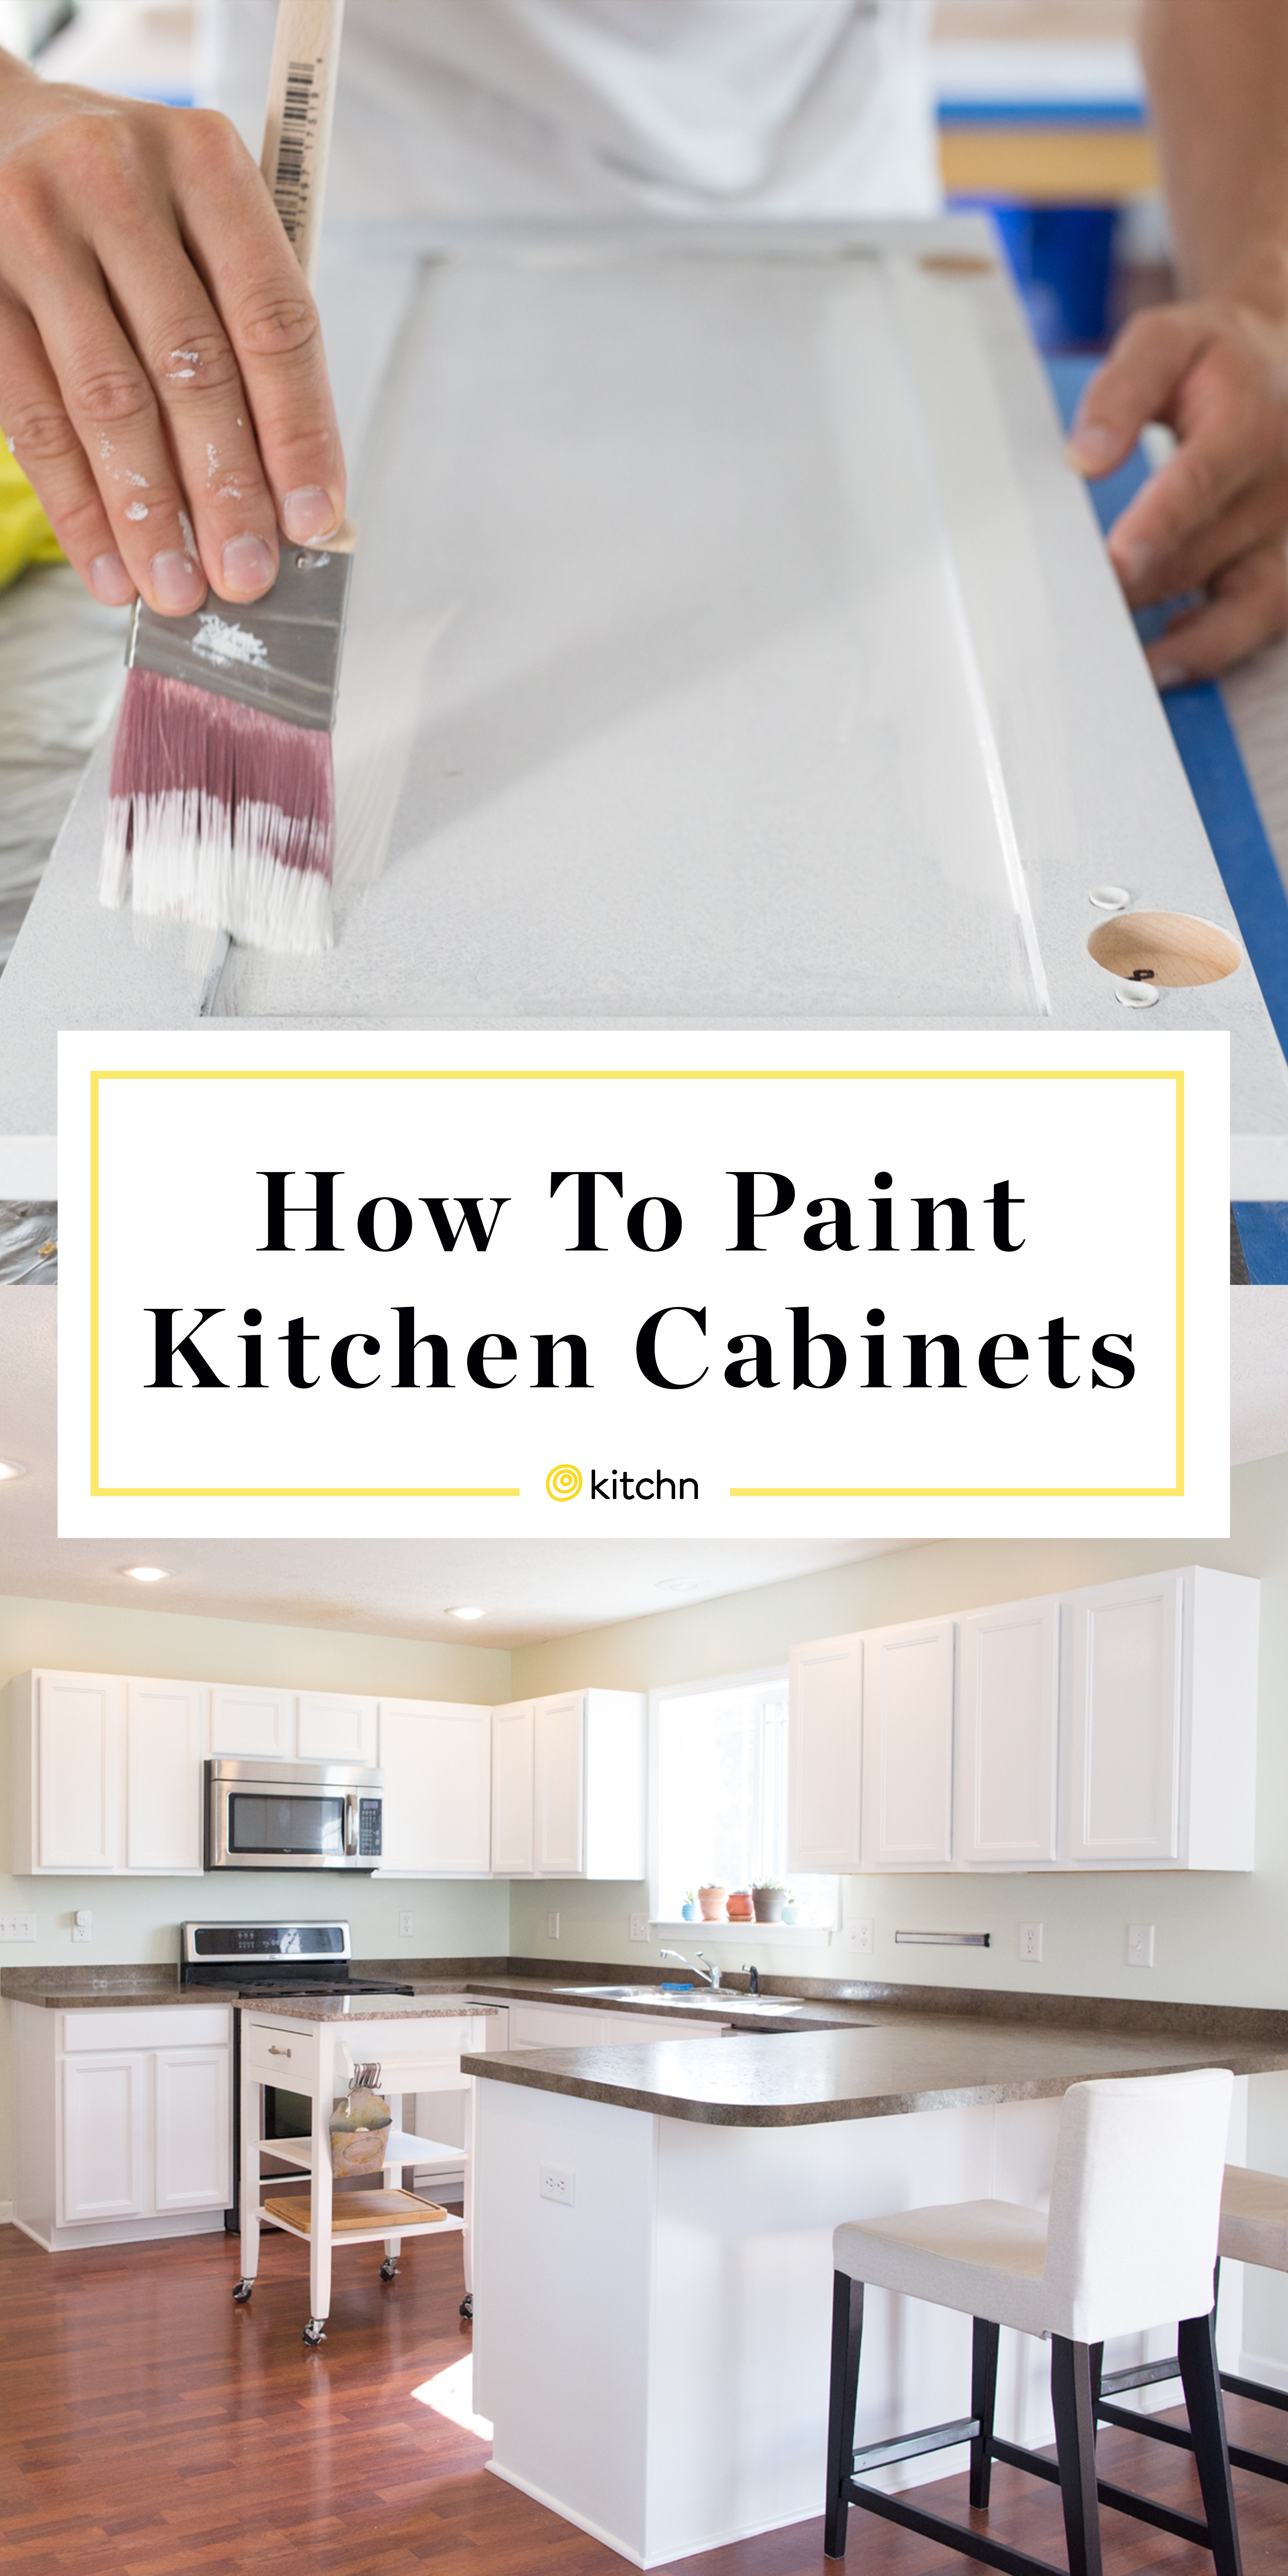 Painting Kitchen Cabinet Doors Unique How to Paint Wood Kitchen Cabinets with White Paint